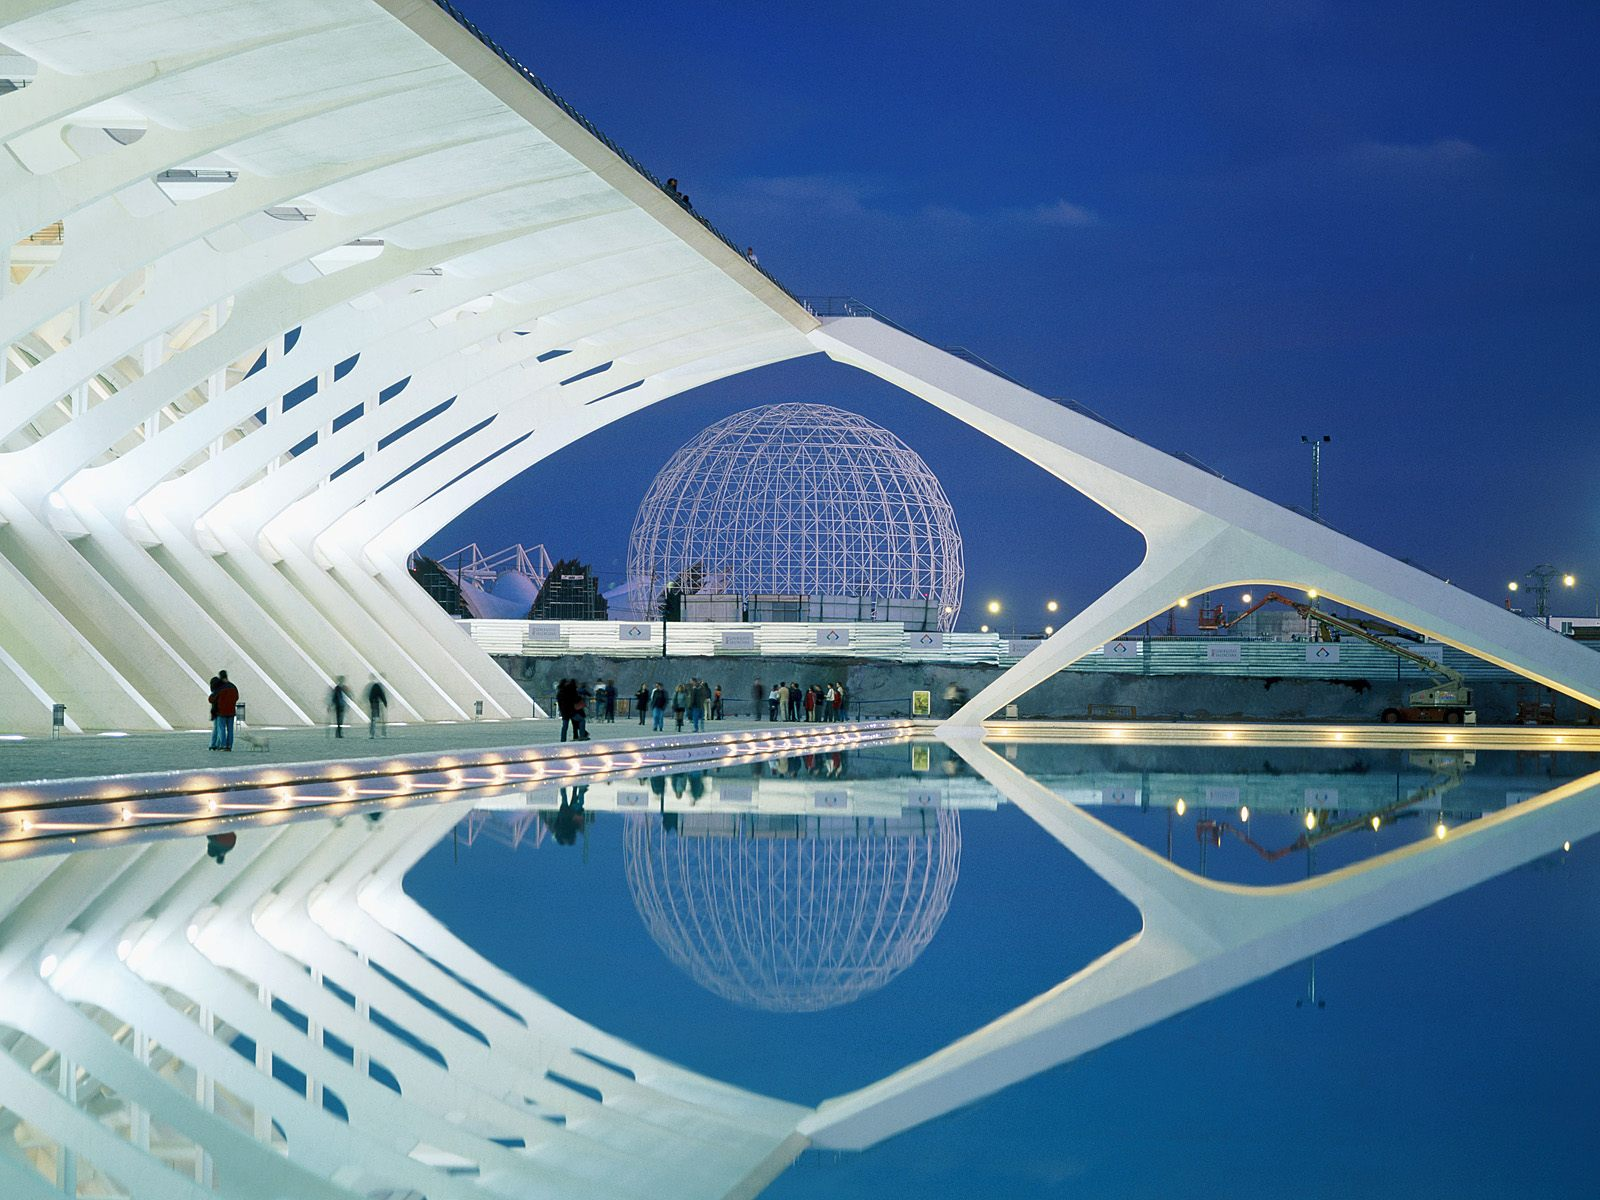 City of Arts and Sciences - Valencia - Spain Wallpaper (23341501) - Fanpop